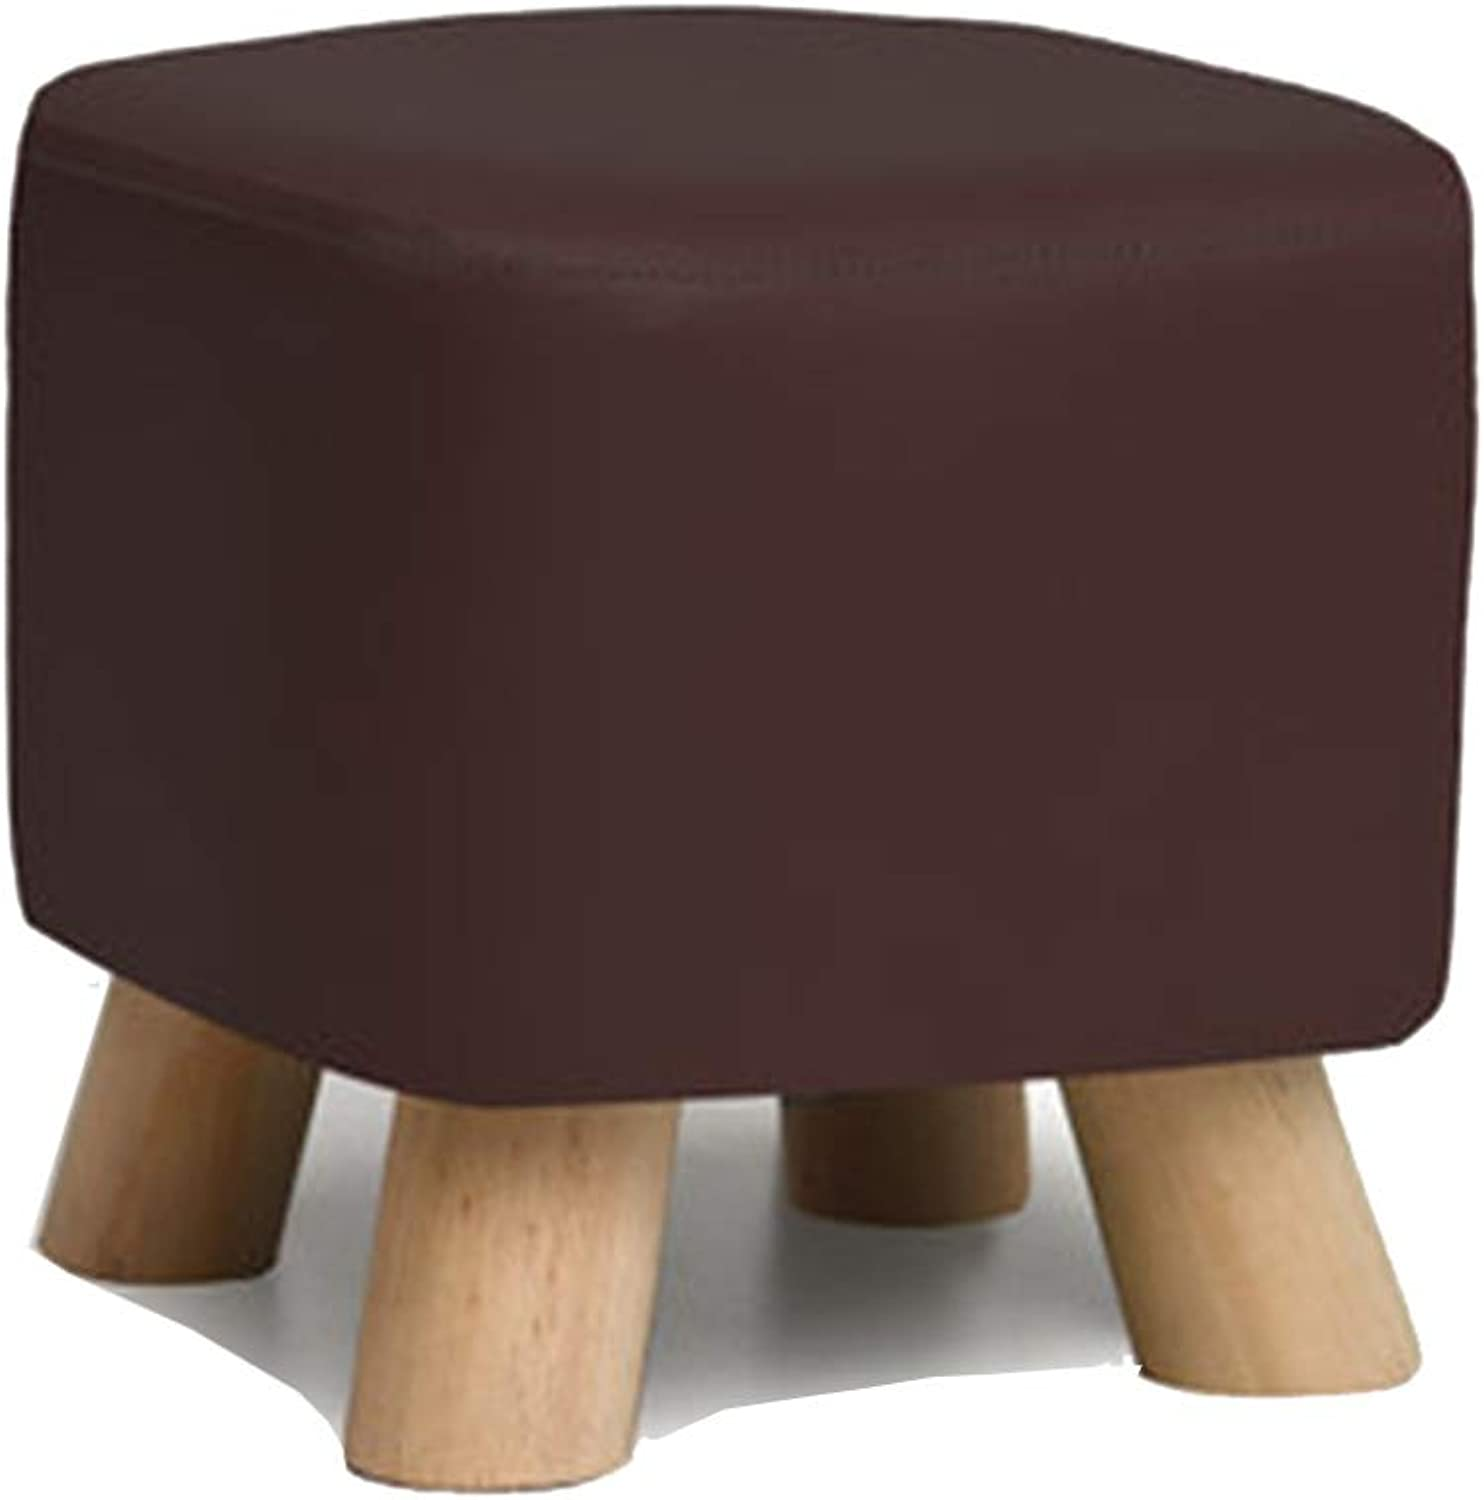 Stool Coffee Table Stool Solid Wood Fabric Square Stool, PU Fabric is Free to wash and wash, Kitchen Bedroom Living Room,G,28  28  25CM